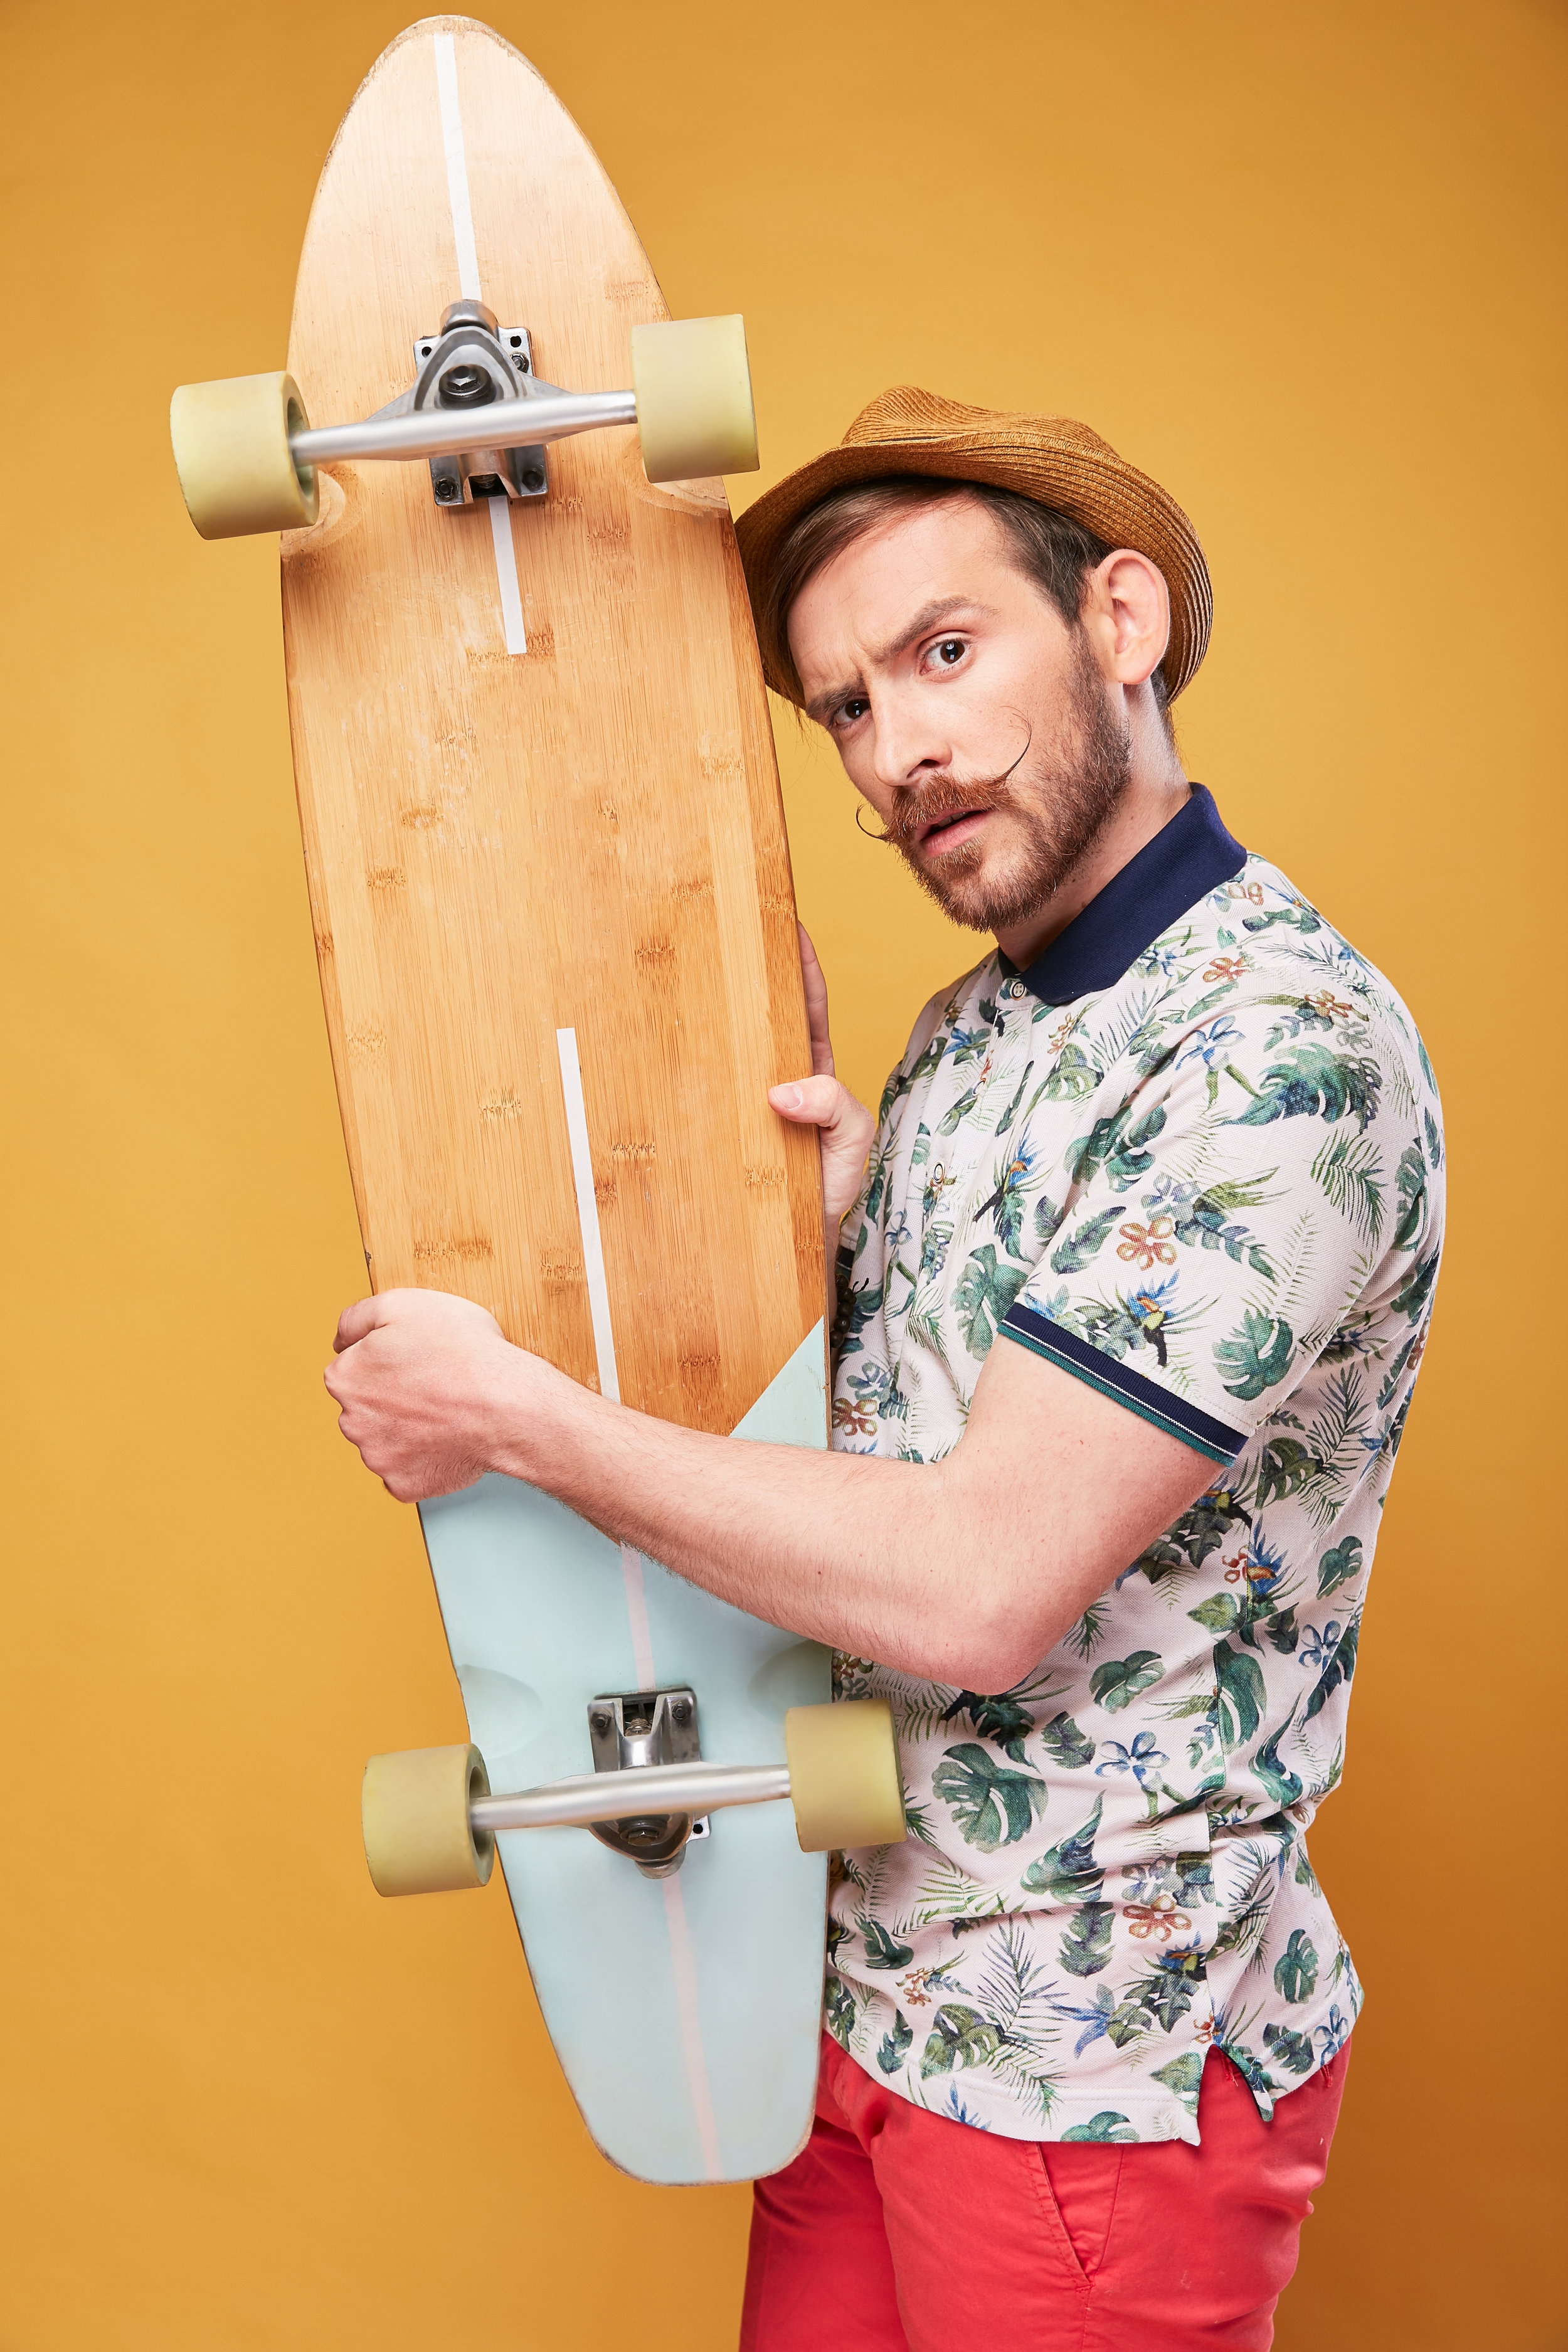 Young man with handlebar mustache and raised eyebrow, dressed in tropical print polo shirt, red shorts and straw hat, with longboard in hands. Studio shot with yellow background